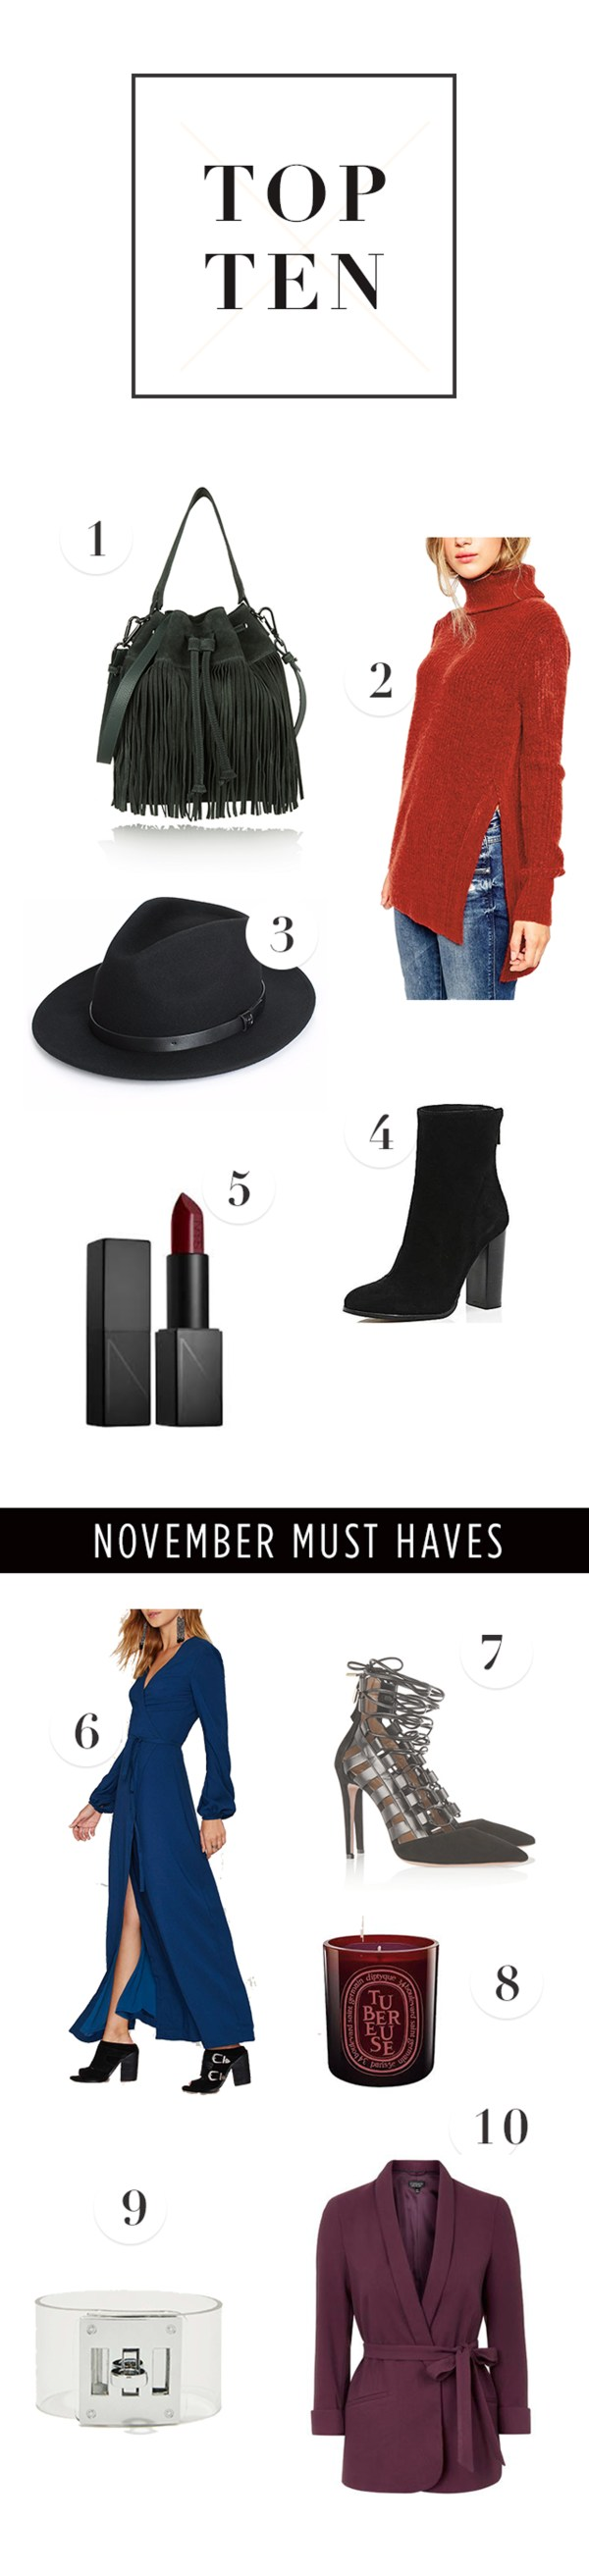 Style-Me-Twice-November-Must-Haves-Fall-2015-Shopping